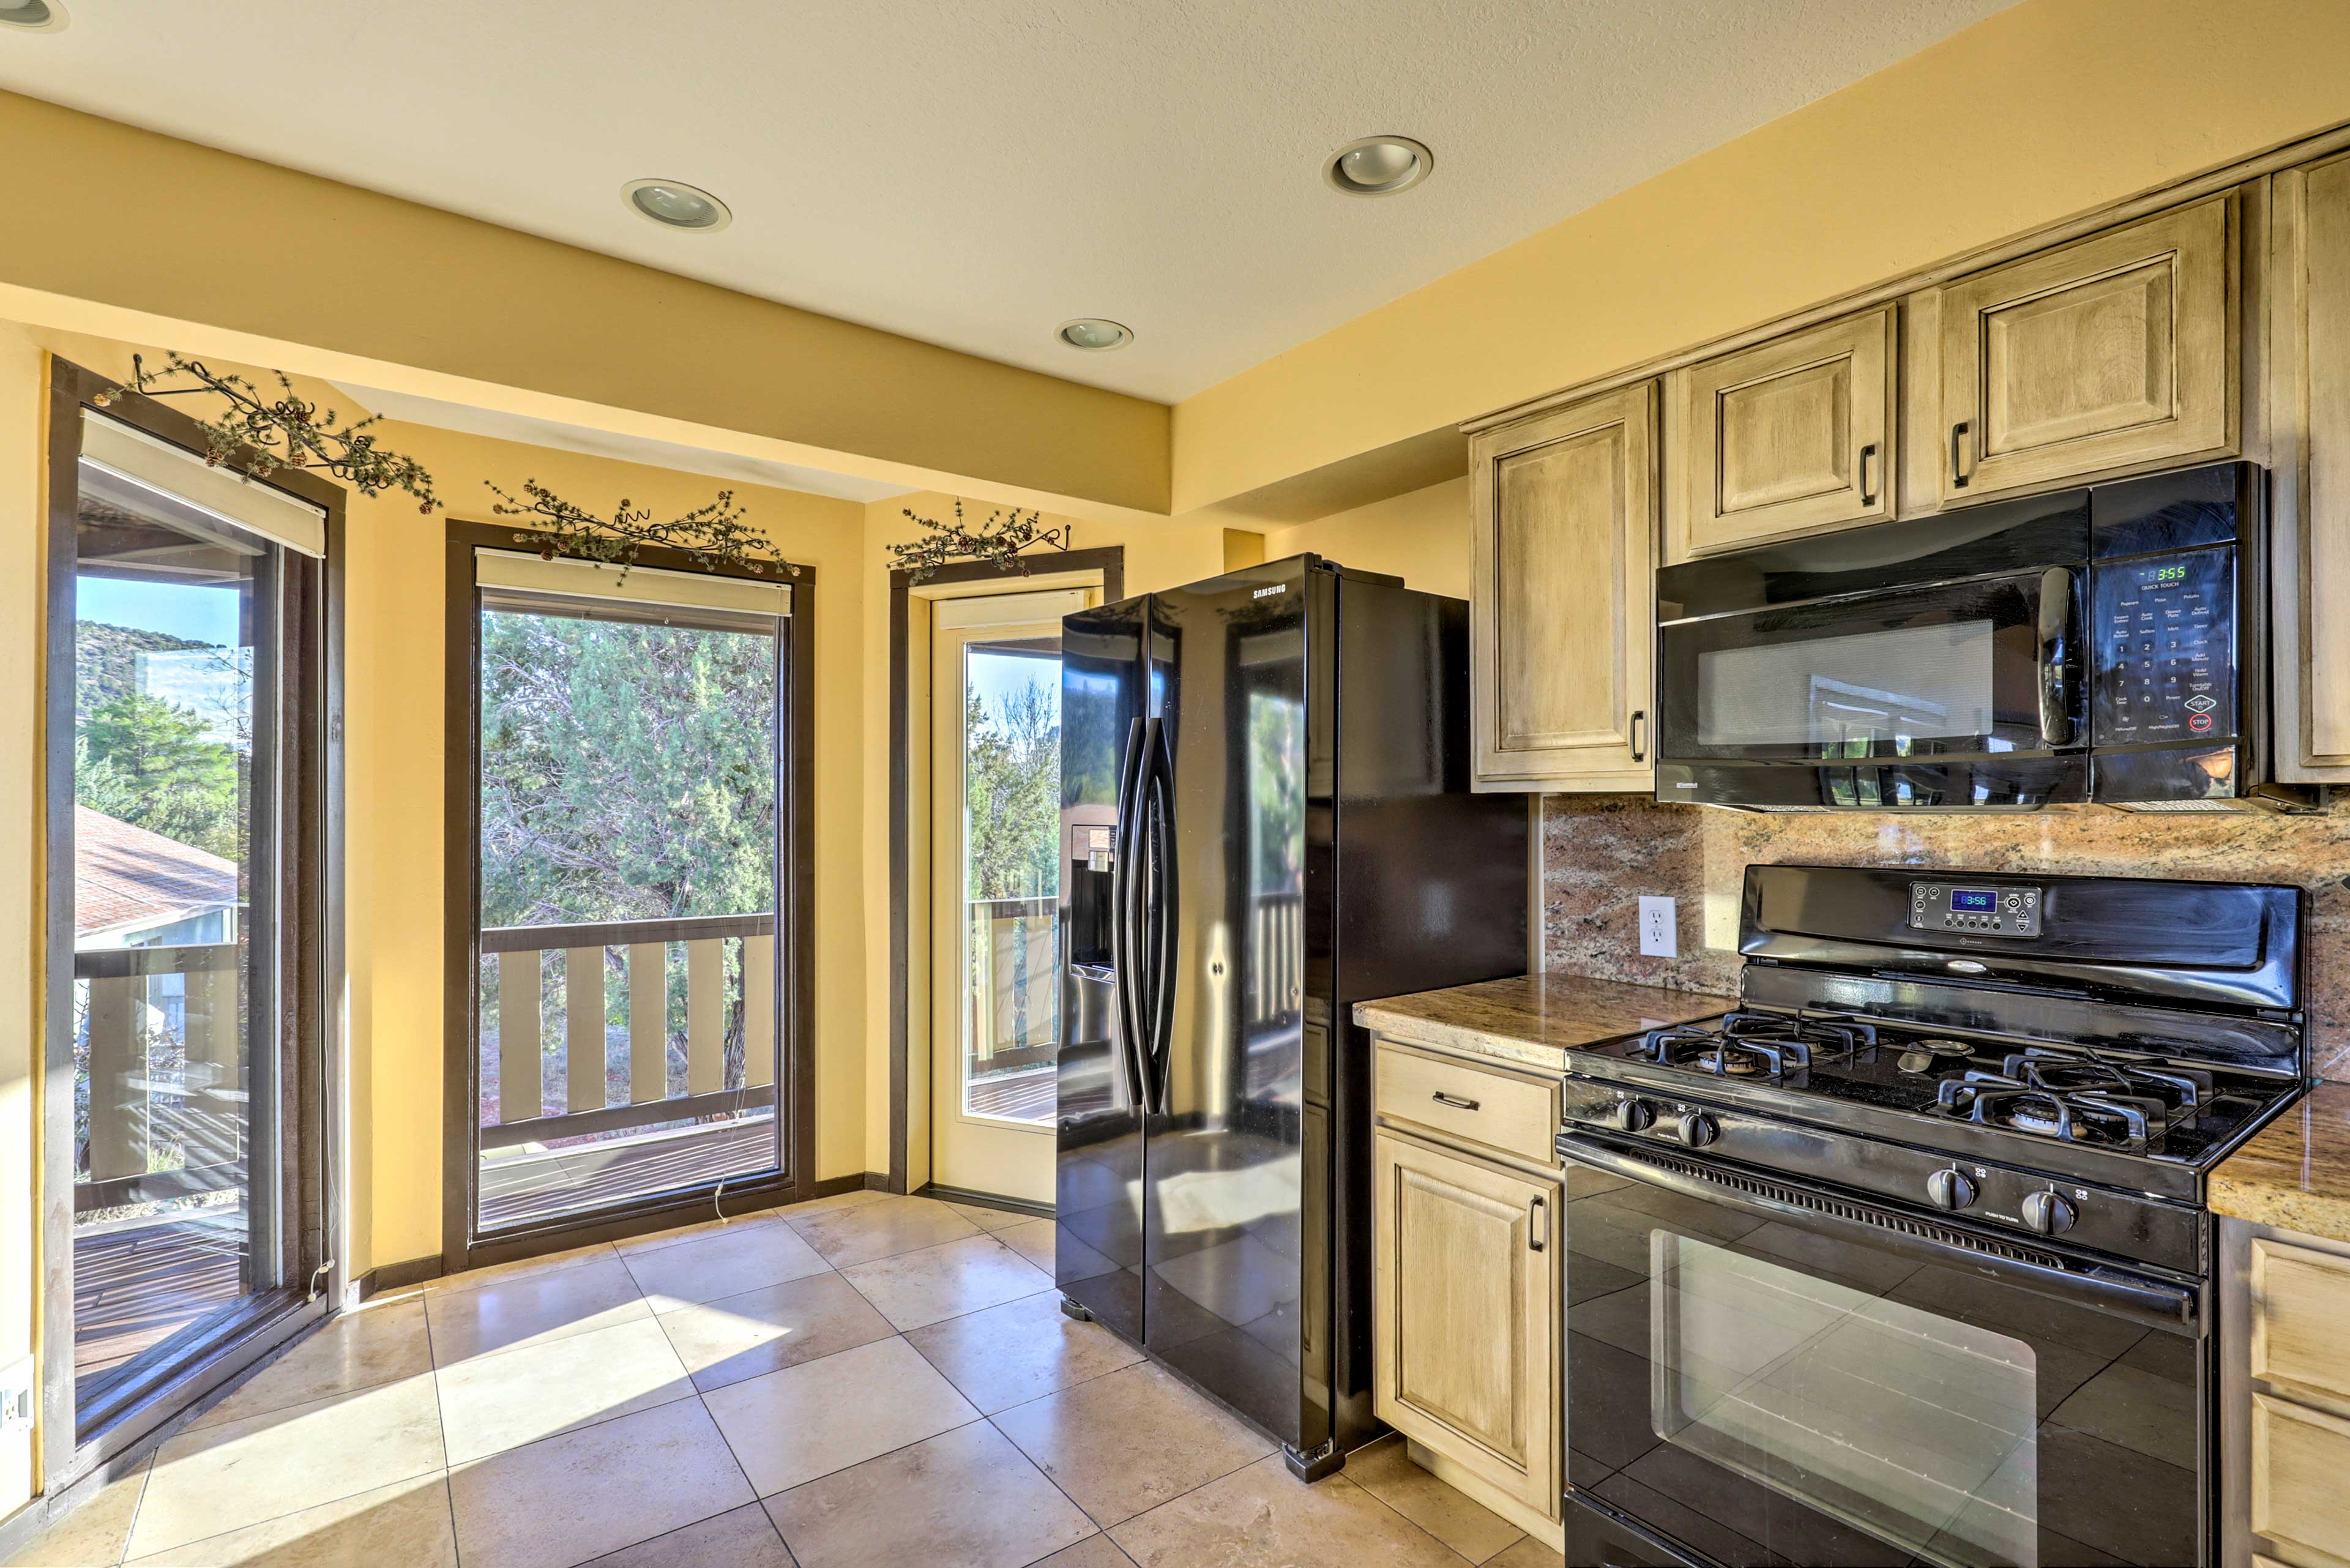 The large windows extend even into the kitchen so you always have natural light.